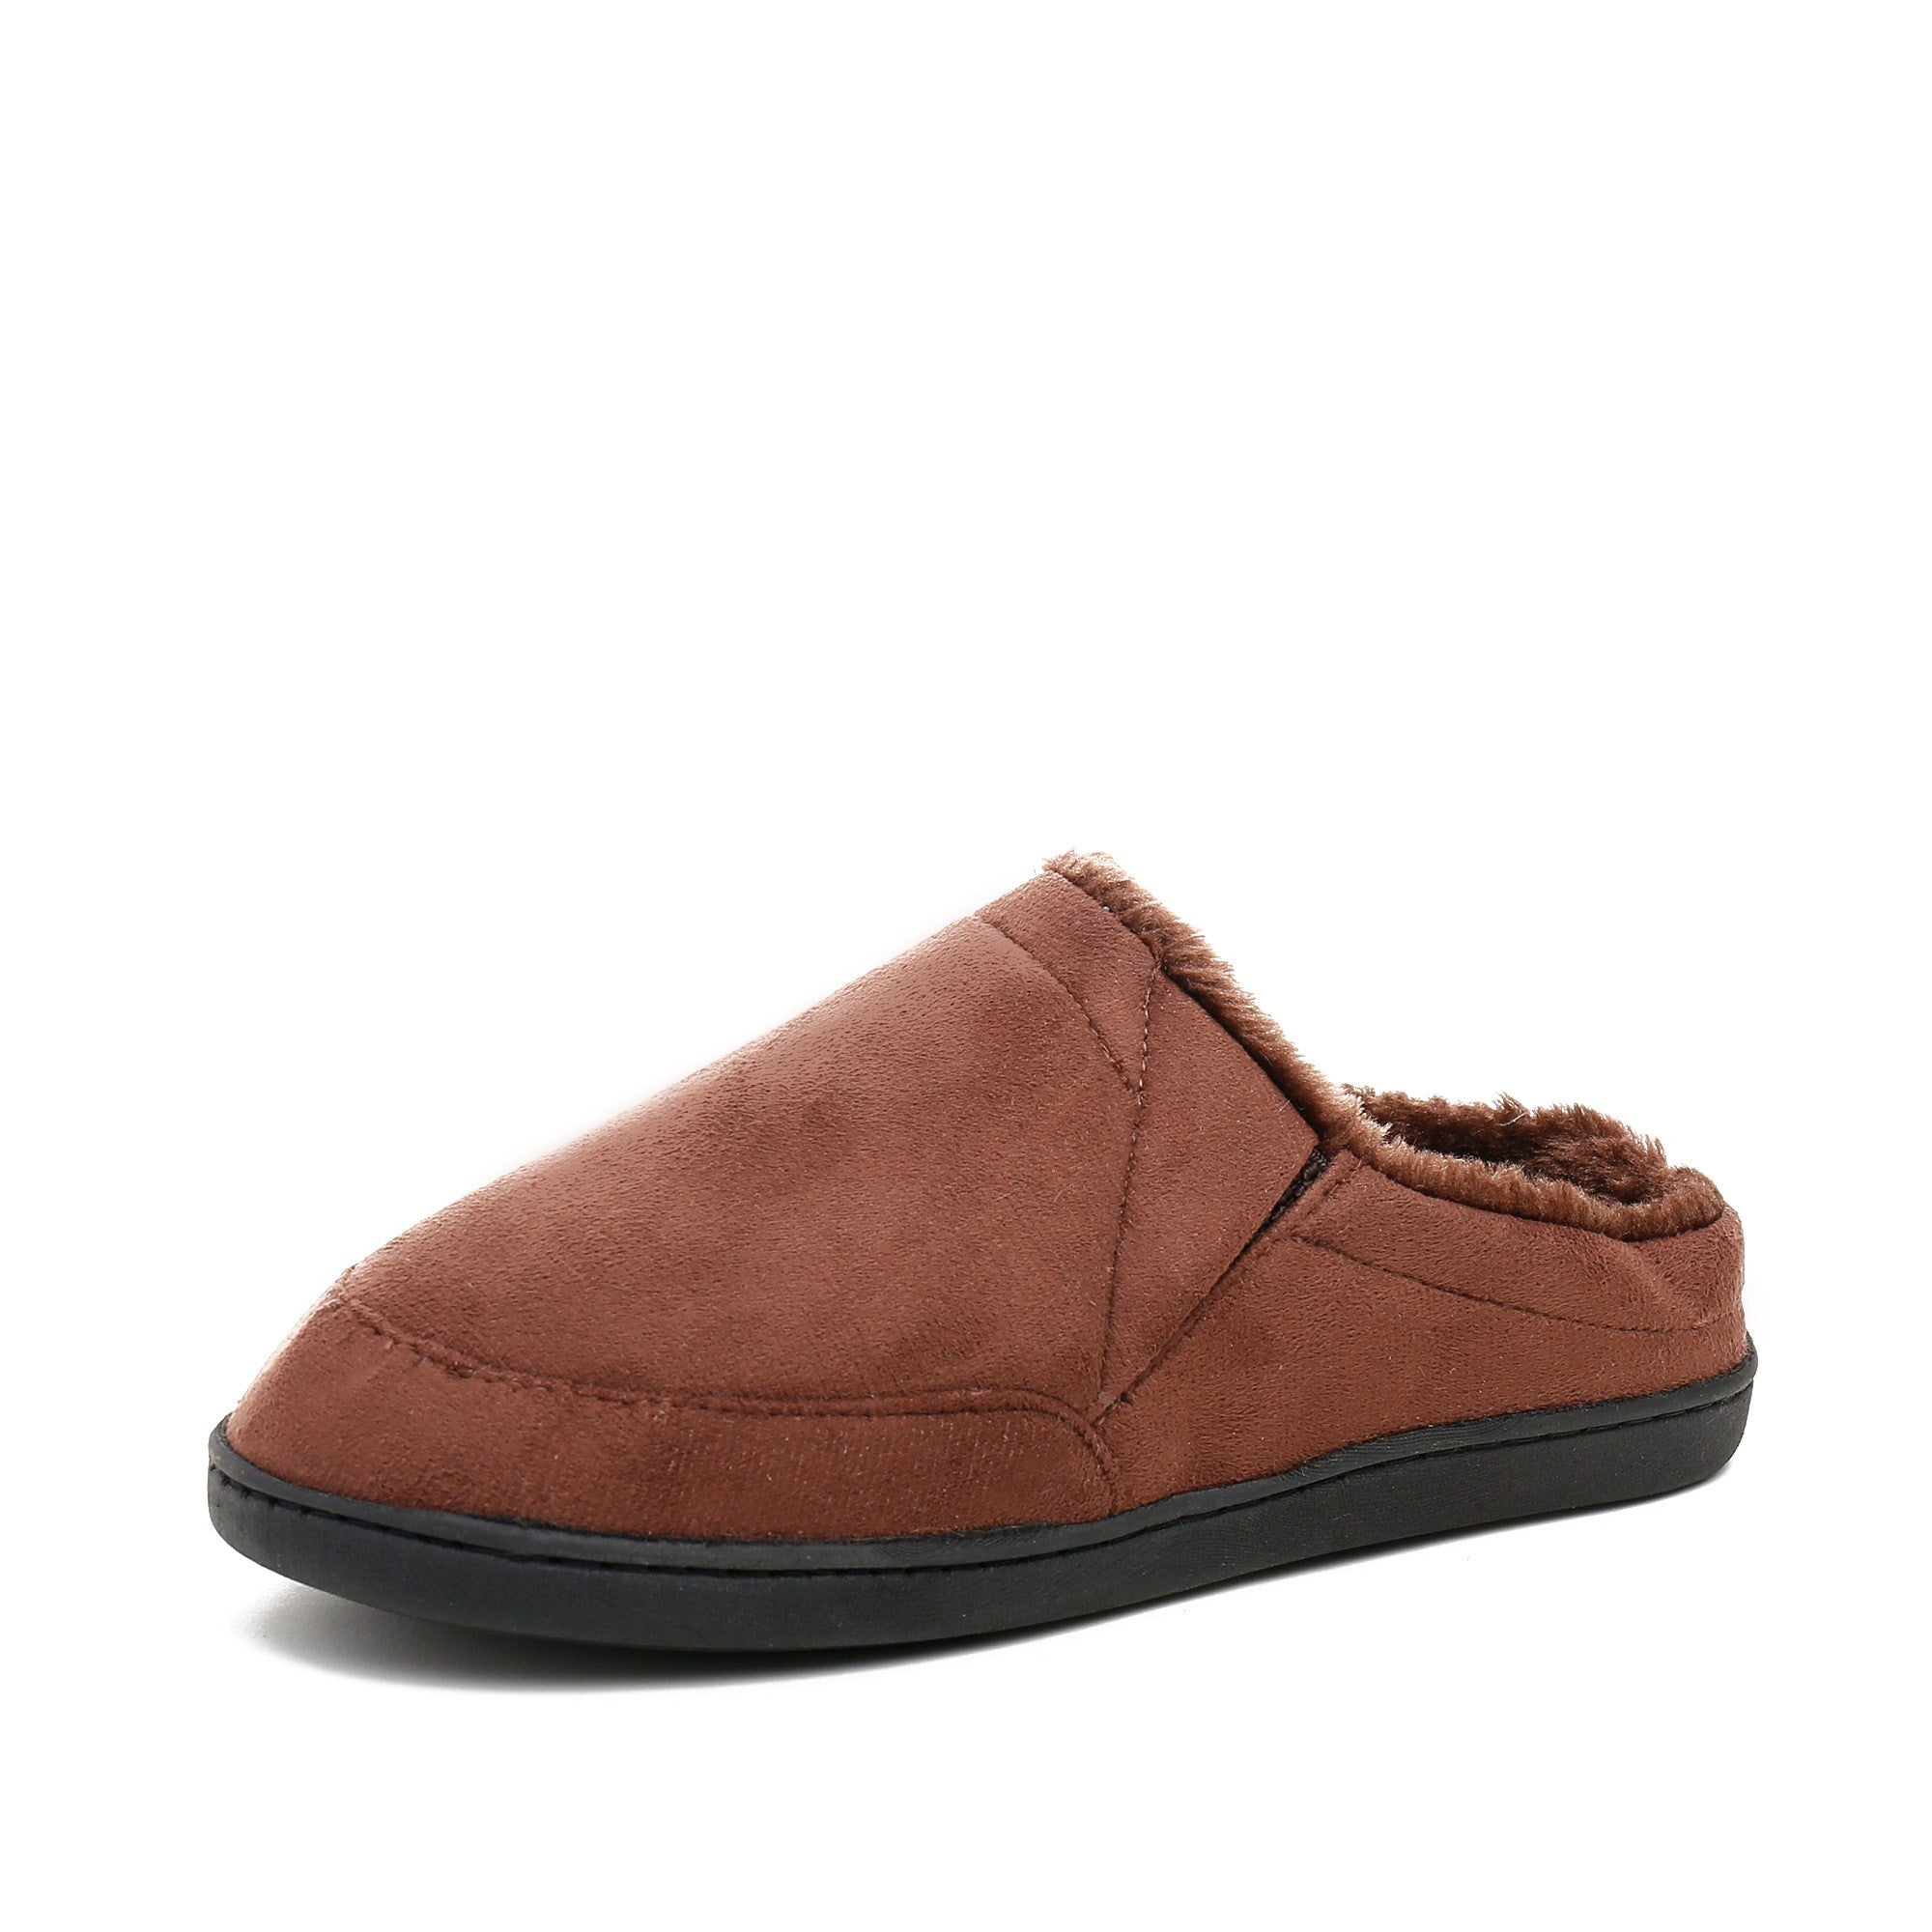 Men's Indoor Slip-On Clog Slipper